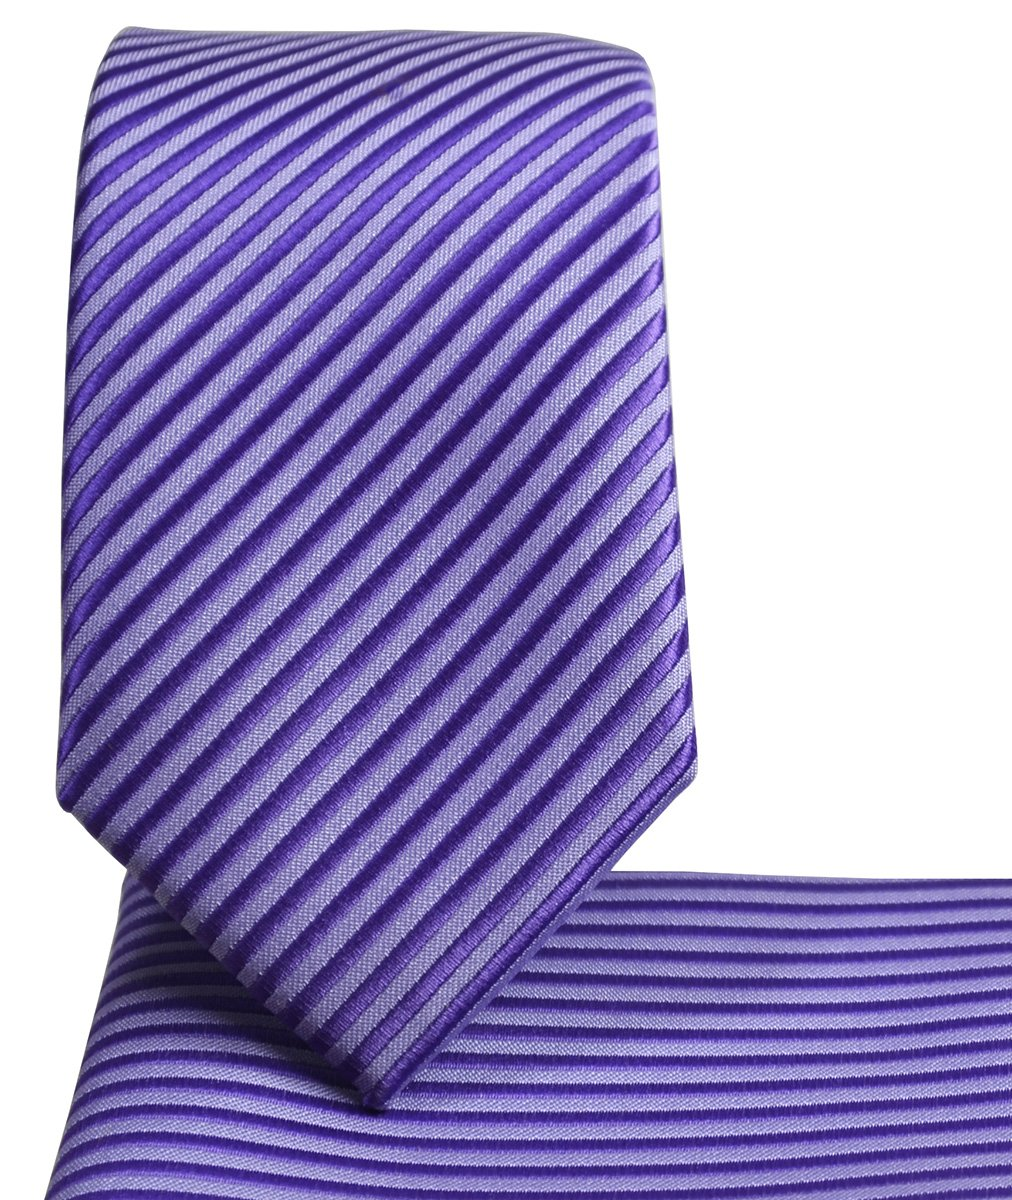 Skinny Necktie and Pocket Square, Stripes by $15 Ties